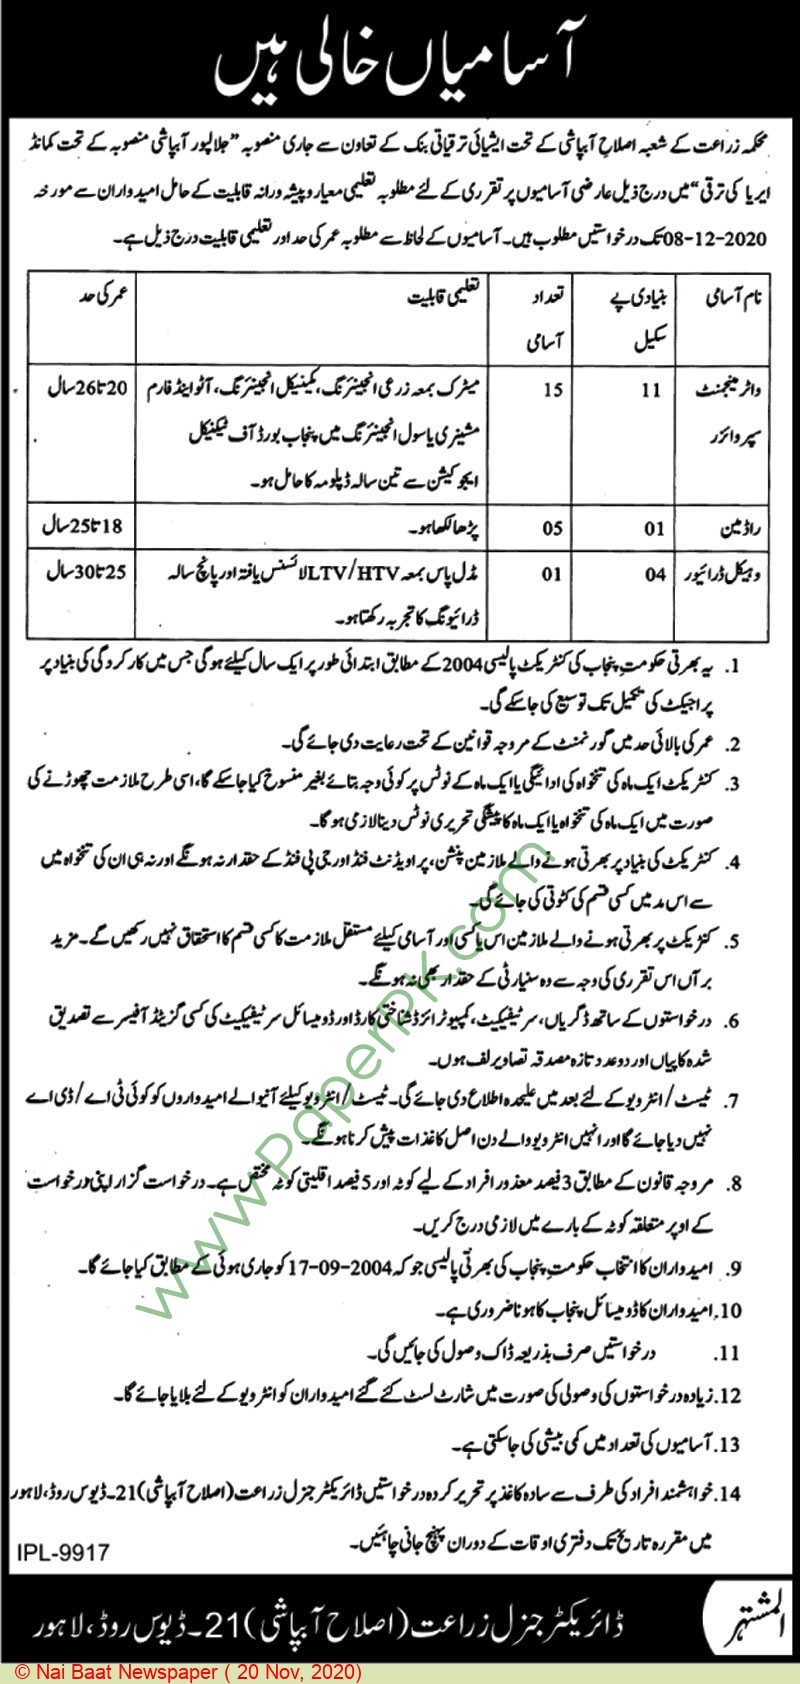 Agriculture Department jobs newspaper ad for Roadman in Lahore